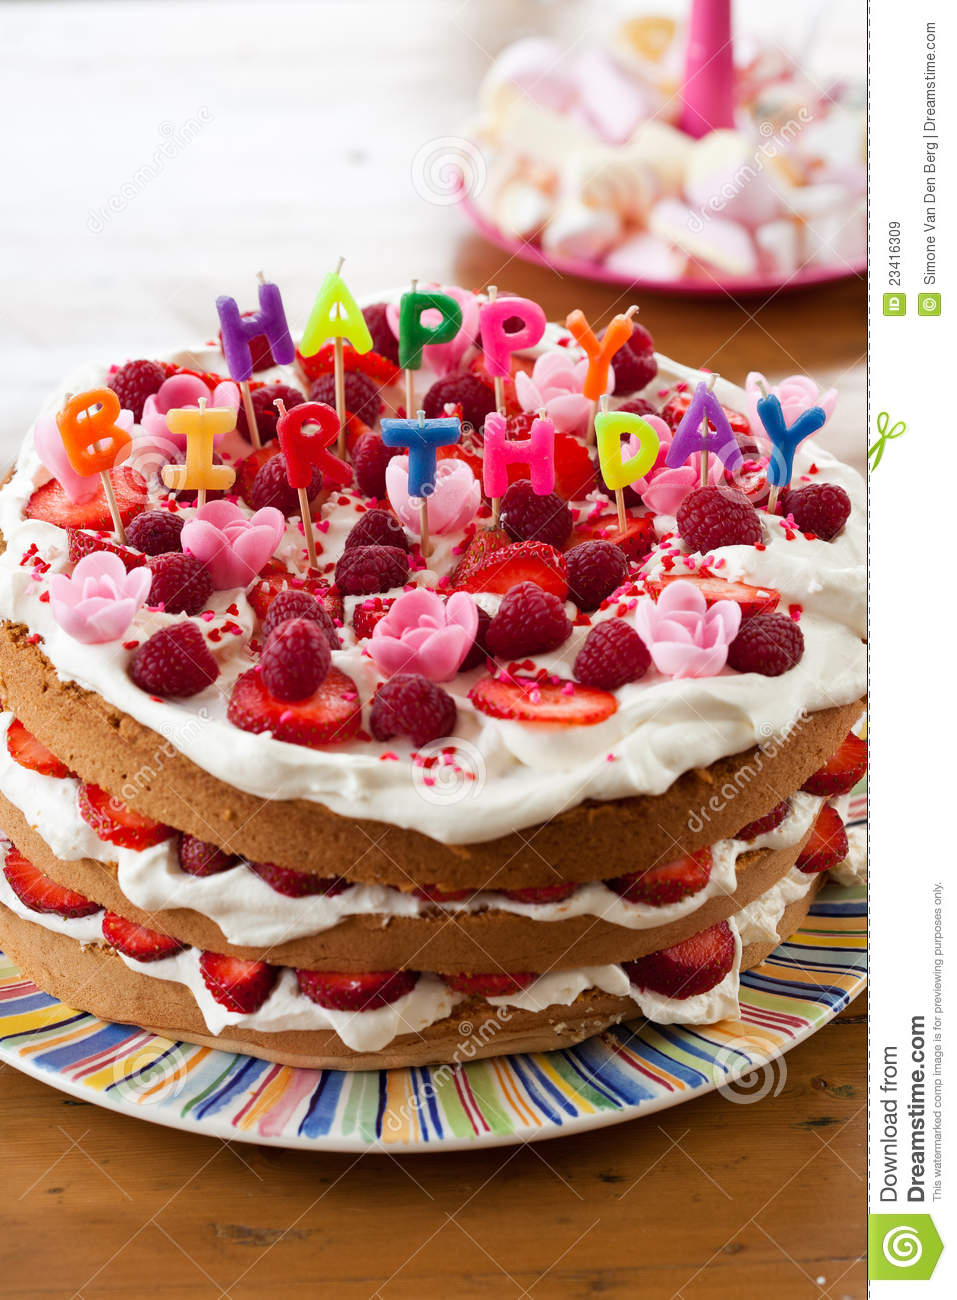 Birthday Cake Images Free Download Happy Birthday Cake Stock Image Image Of Obese Decoration 23416309